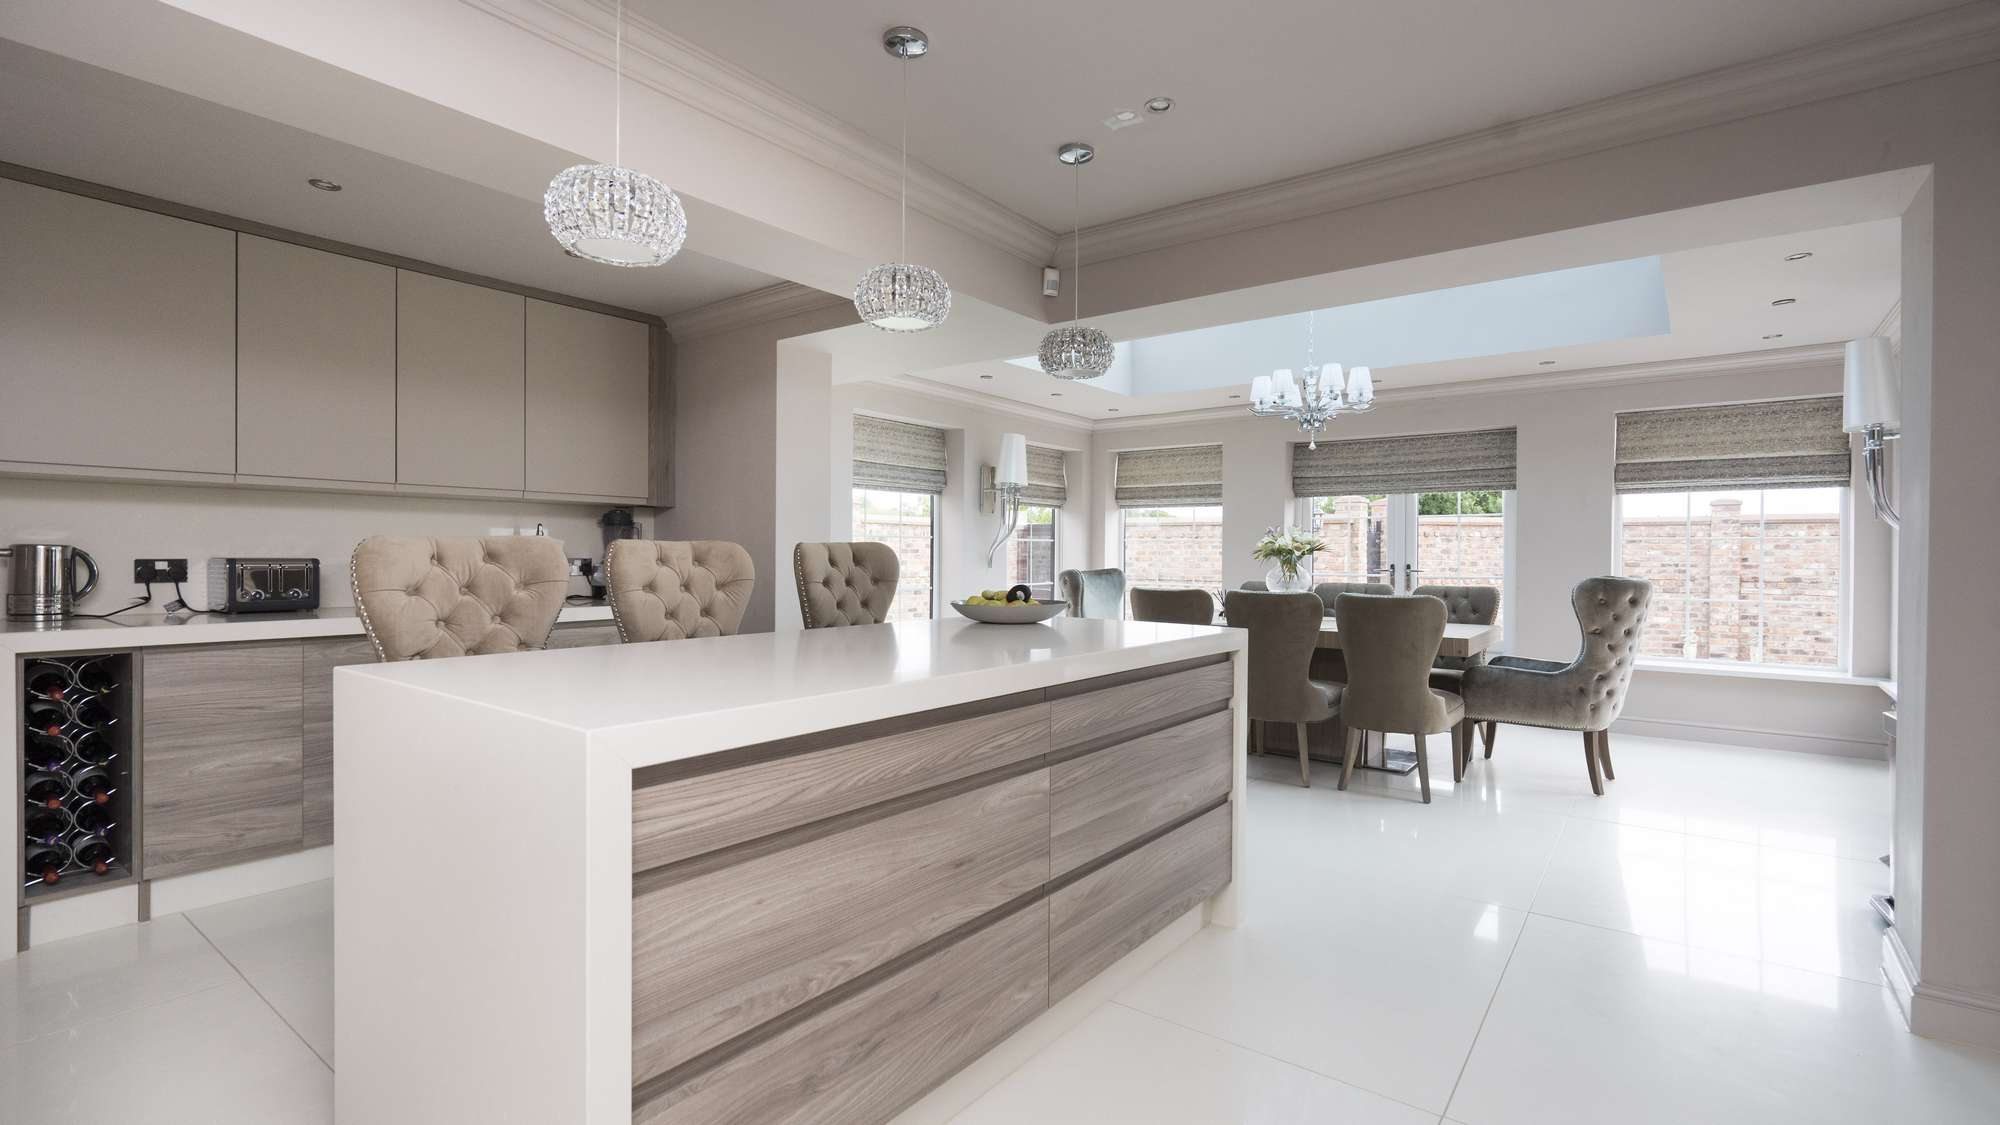 Alternative view of this kitchen showing the new extension and dining area.